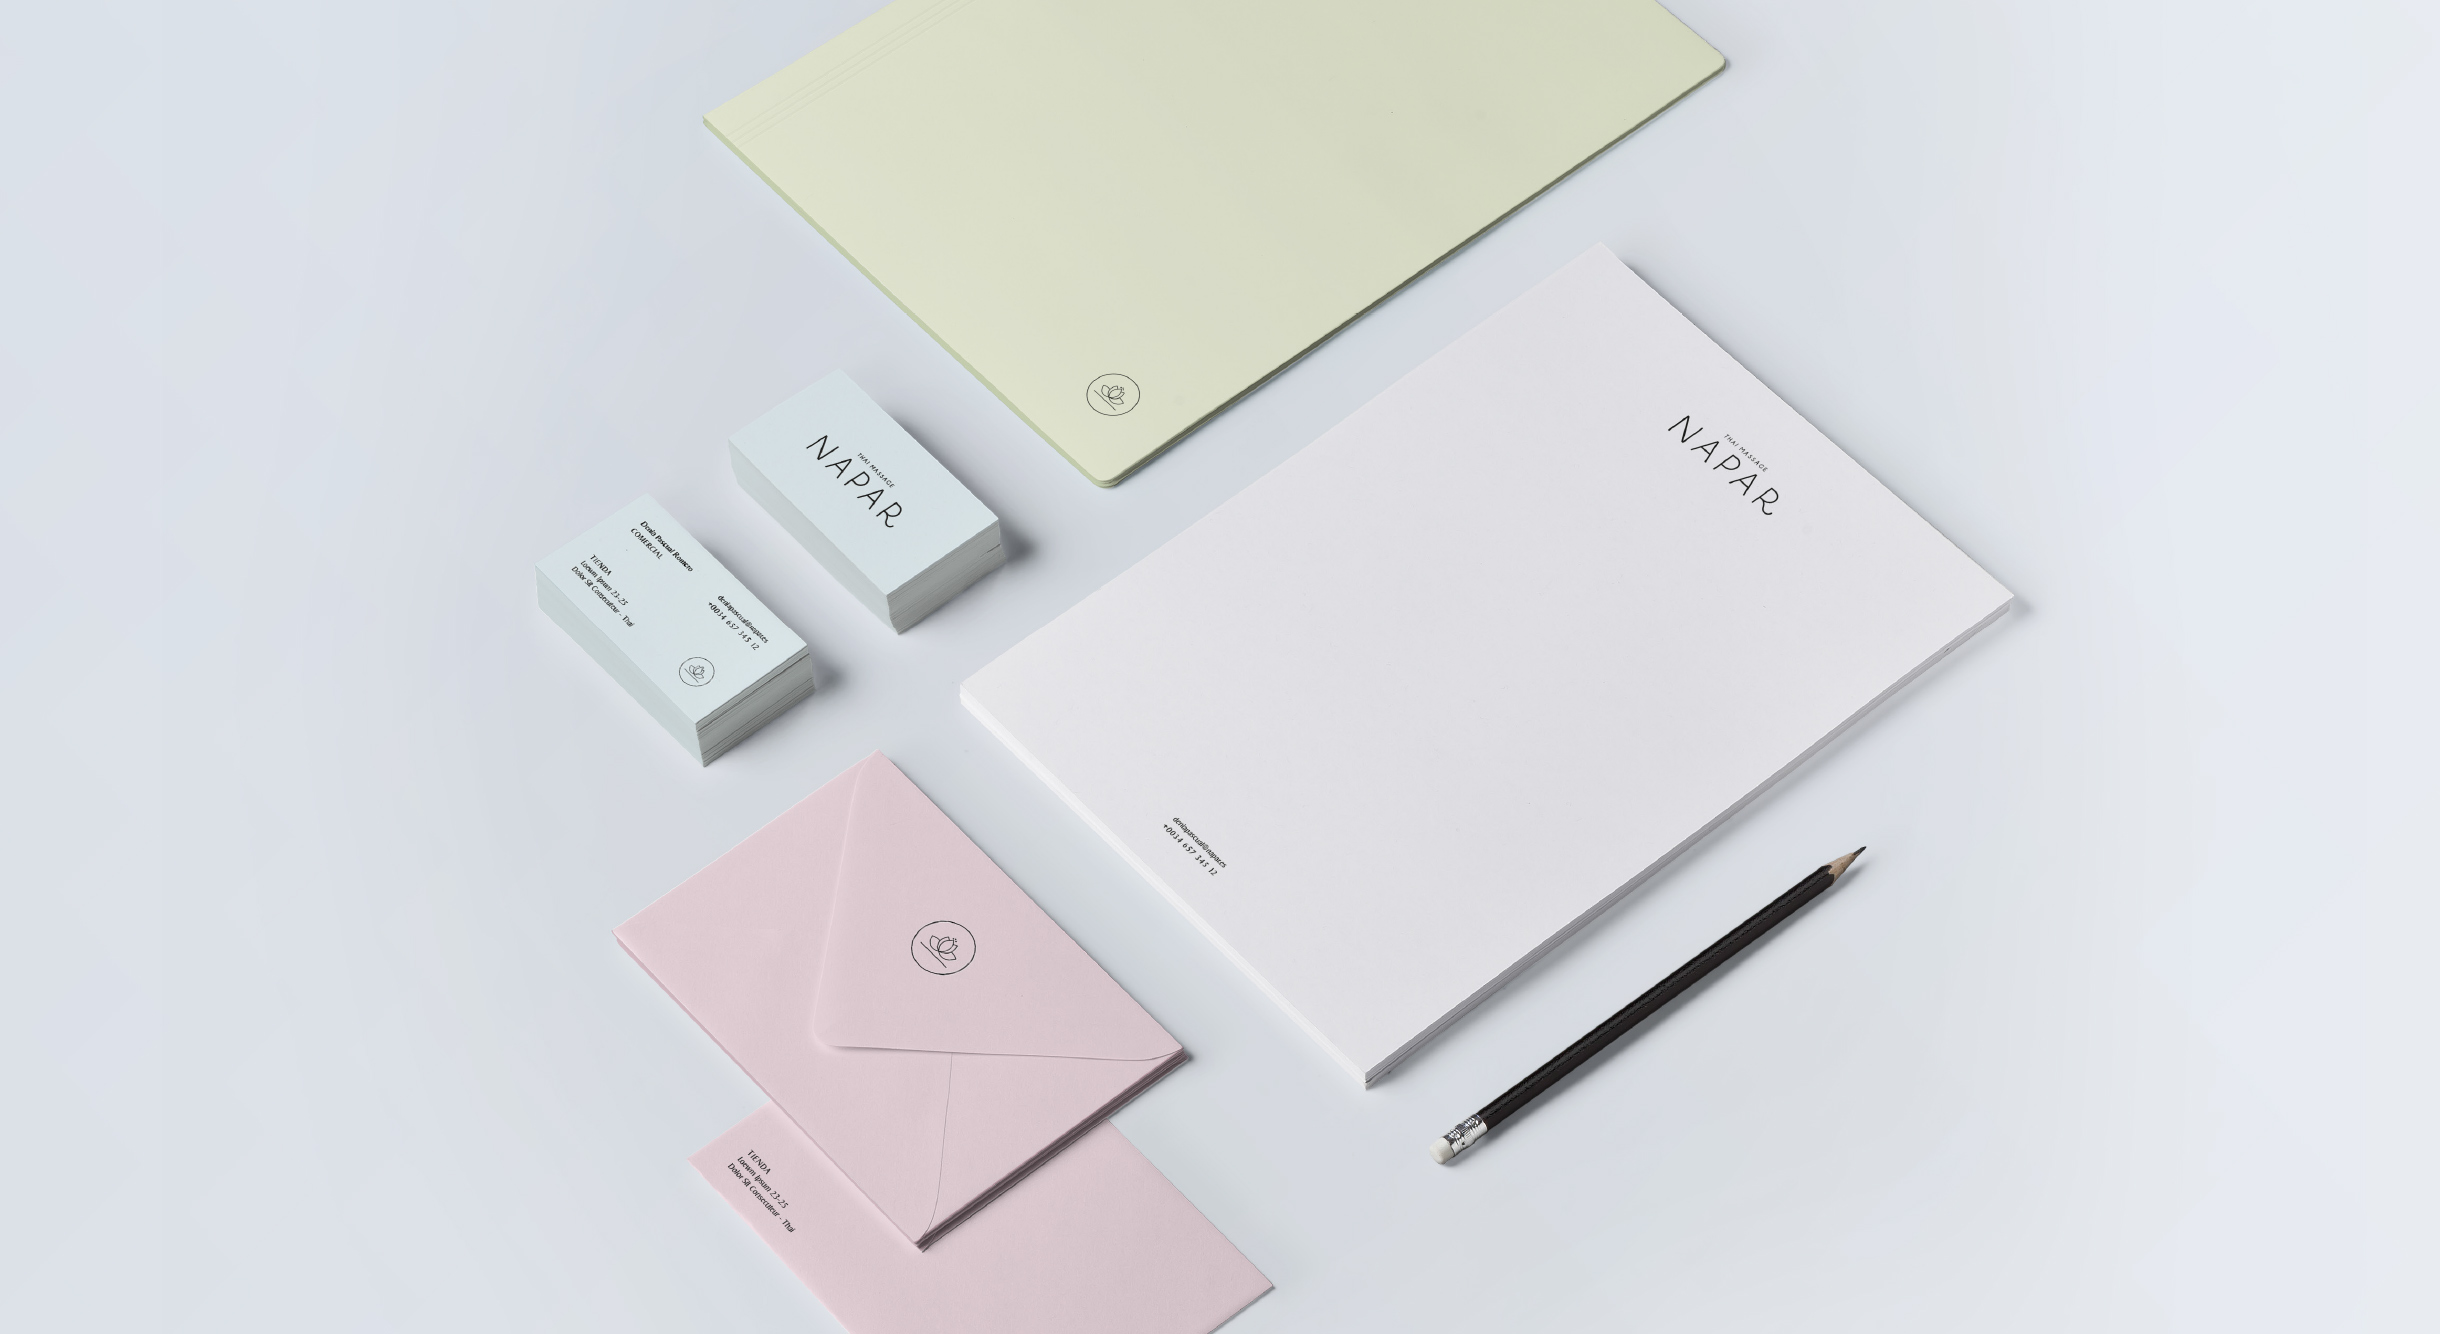 napar_thai_massage_stationary_design_x